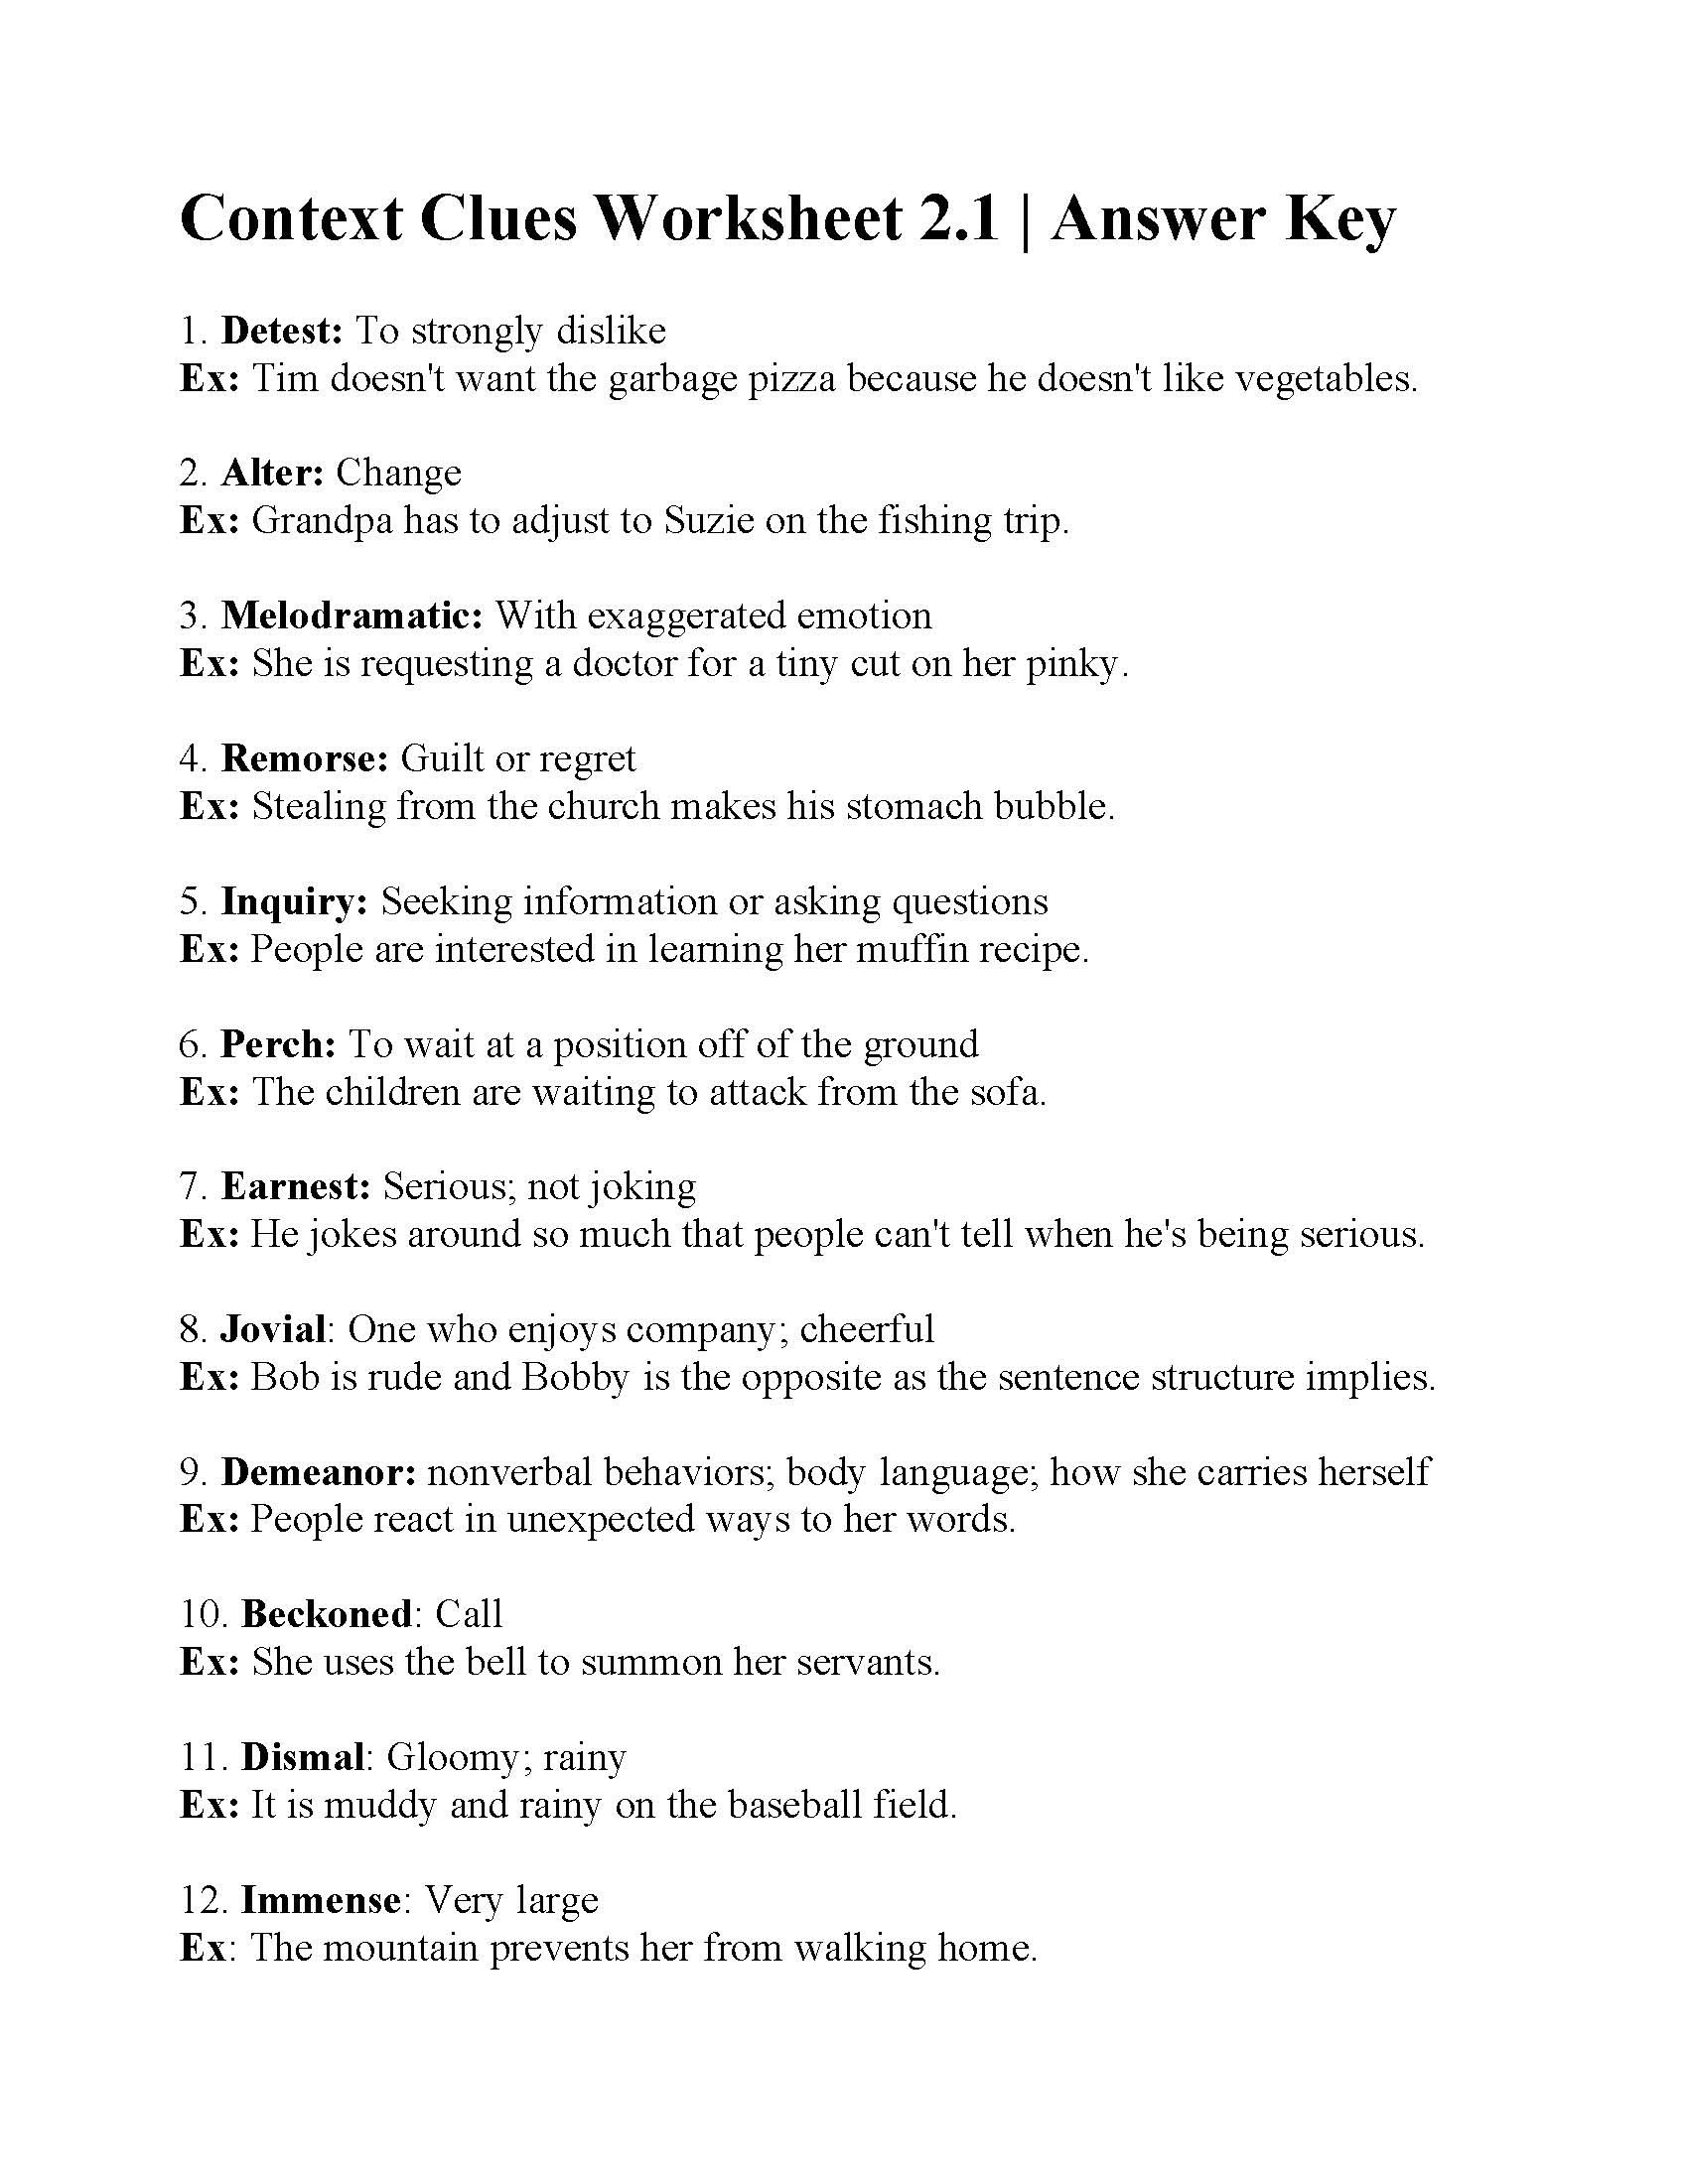 Context Clues Worksheets 3rd Grade Context Clues Worksheets Grade 5